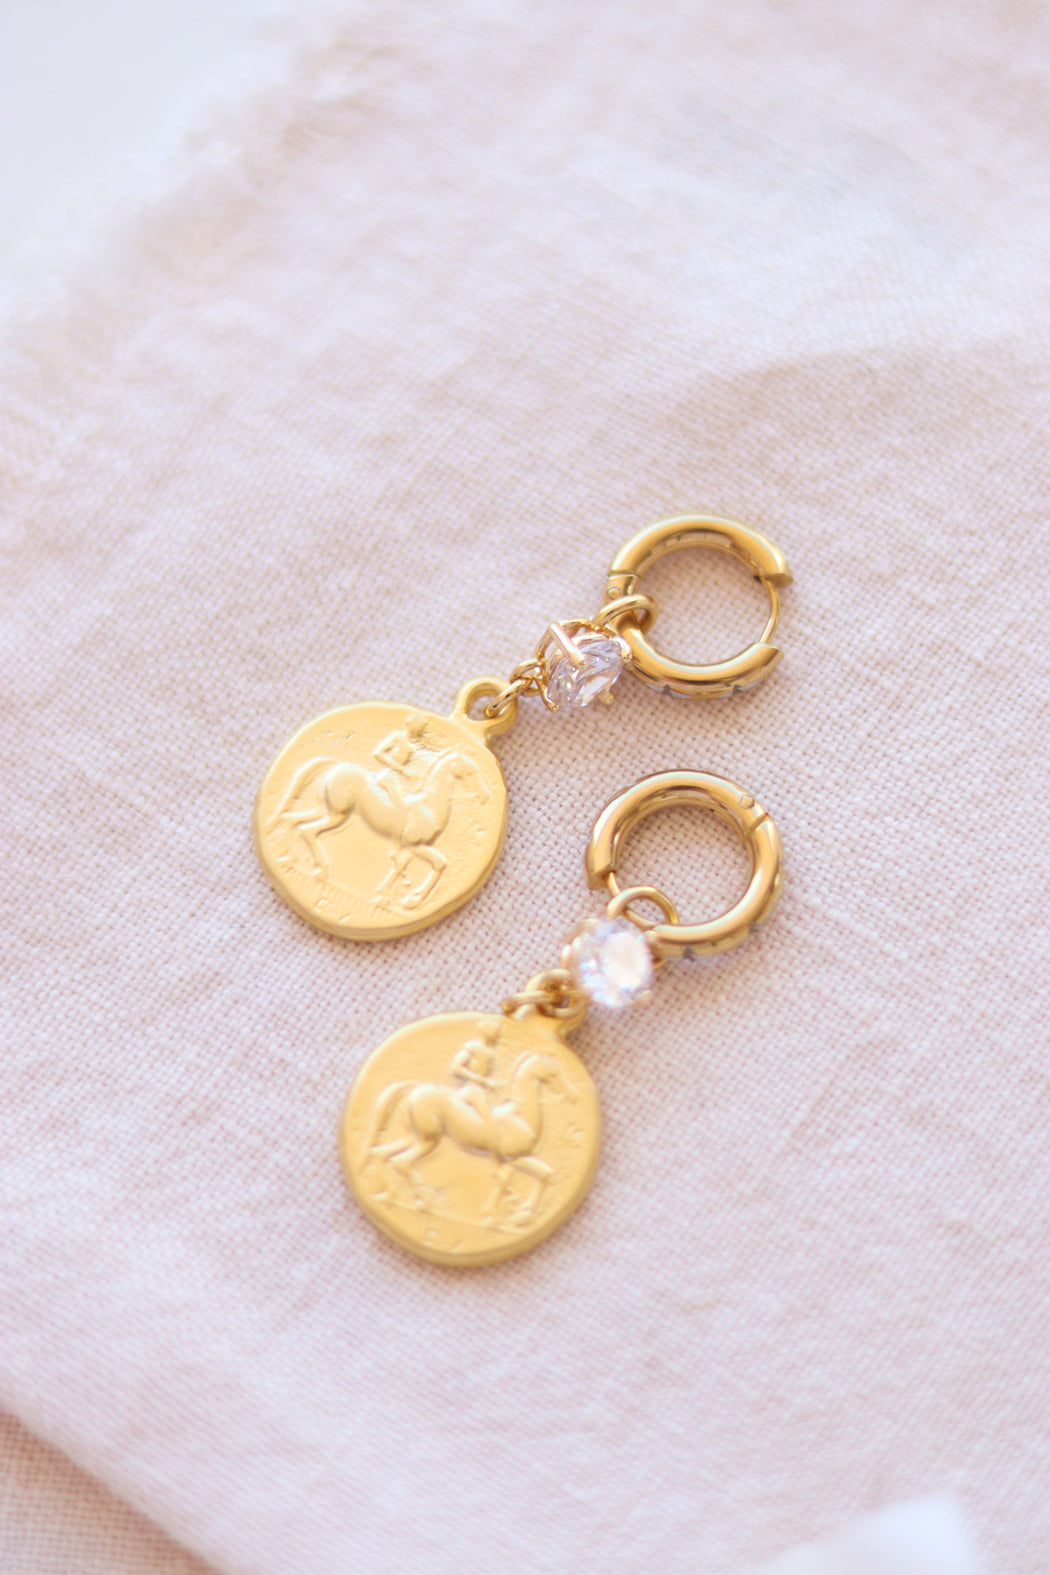 Trevi Coins Earrings